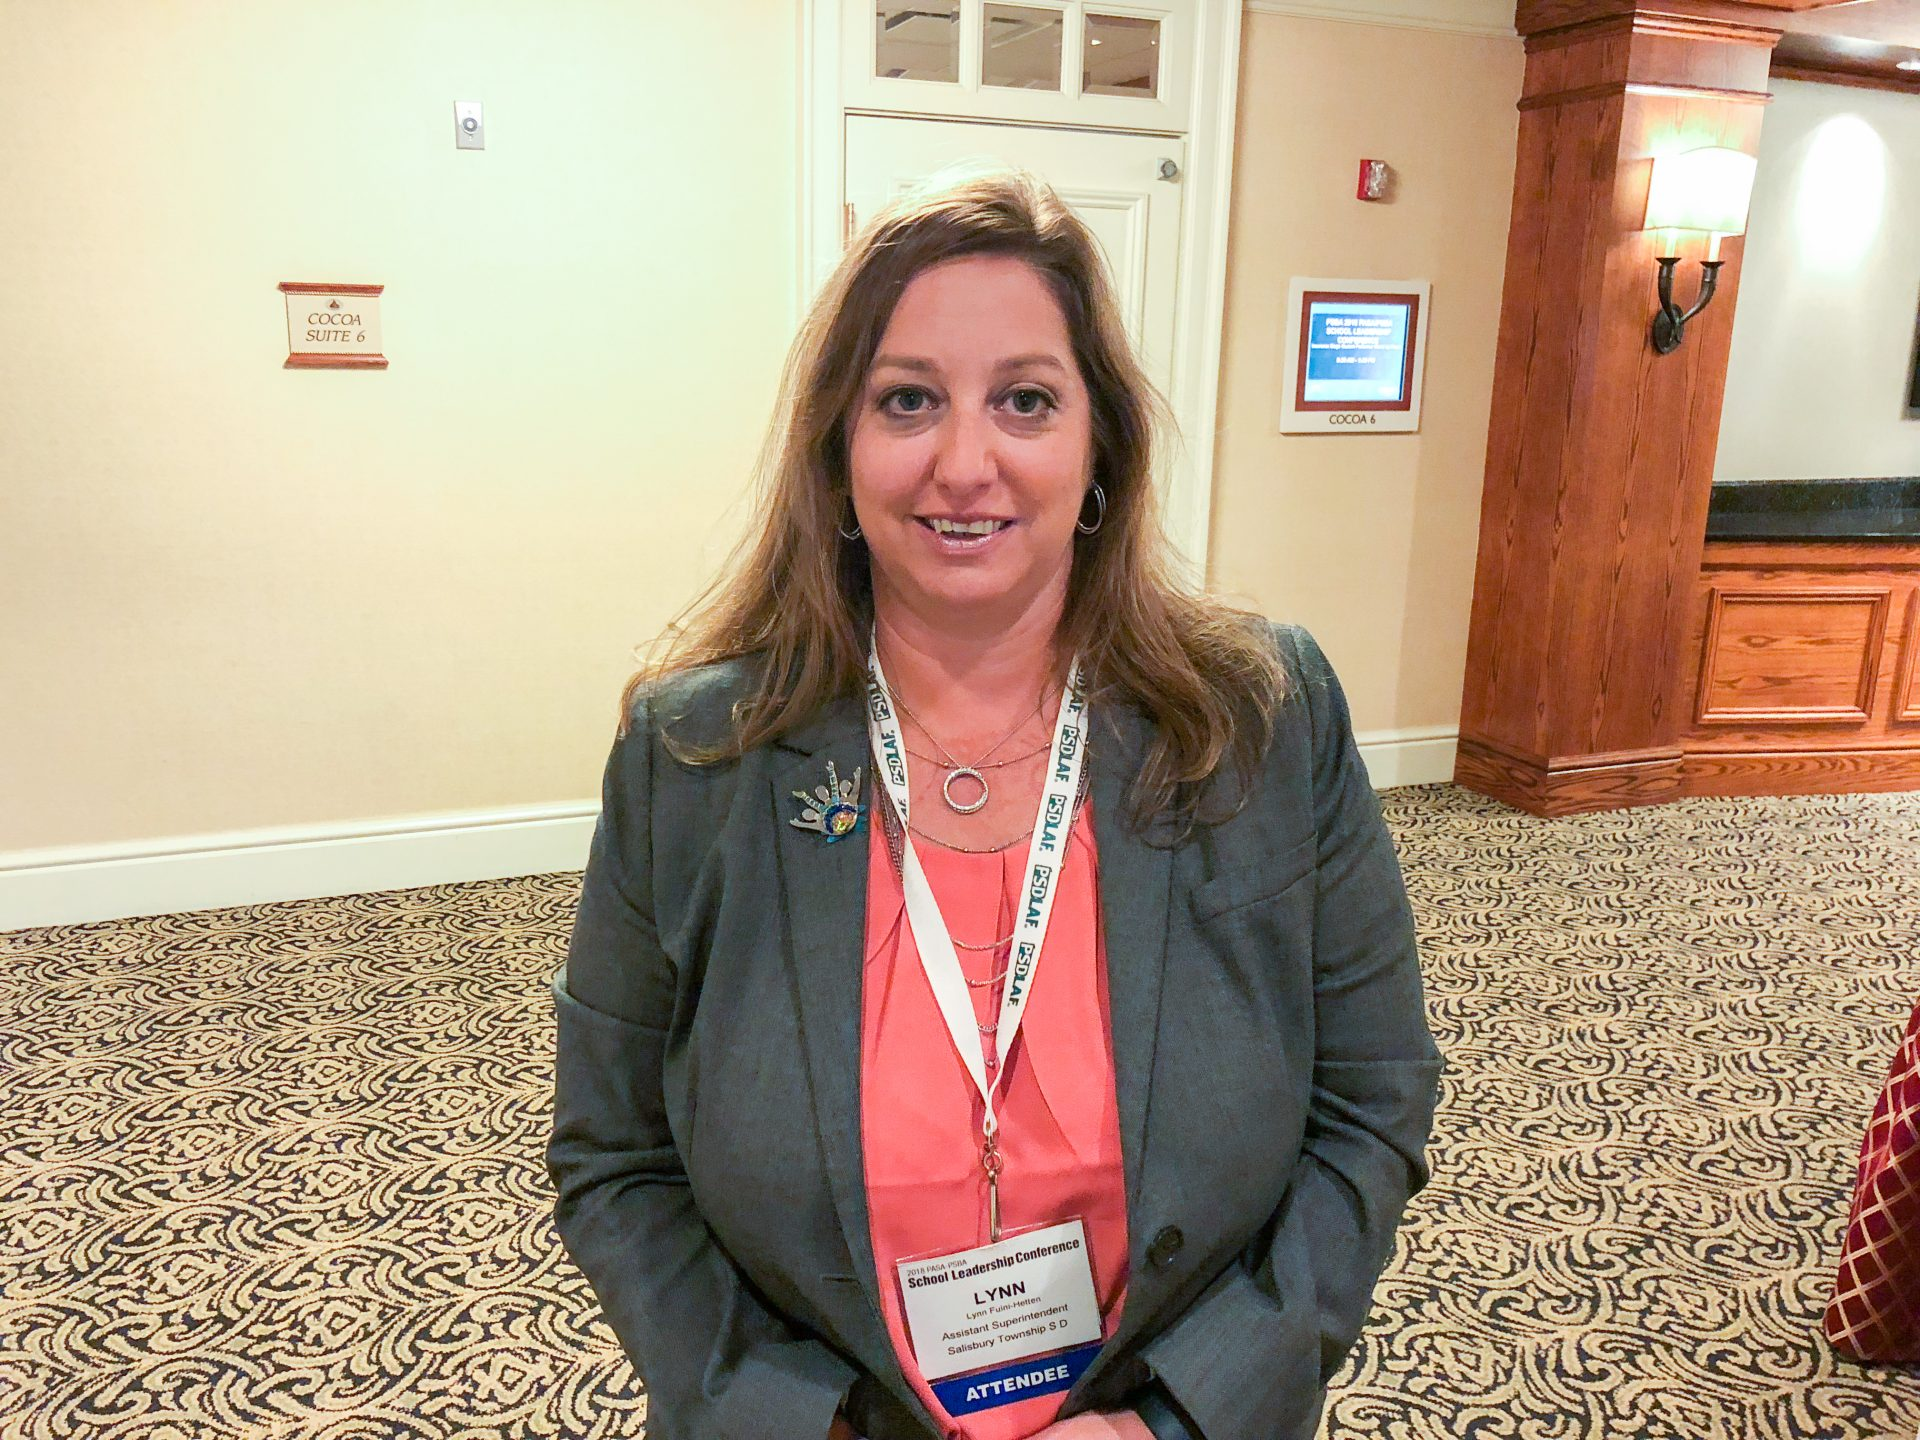 Lynn Fuini-Hetten is the associate superintendent of Salisbury Township School District in Lehigh County. She is seen here at a conference in Hershey on Oct. 18, 2018.